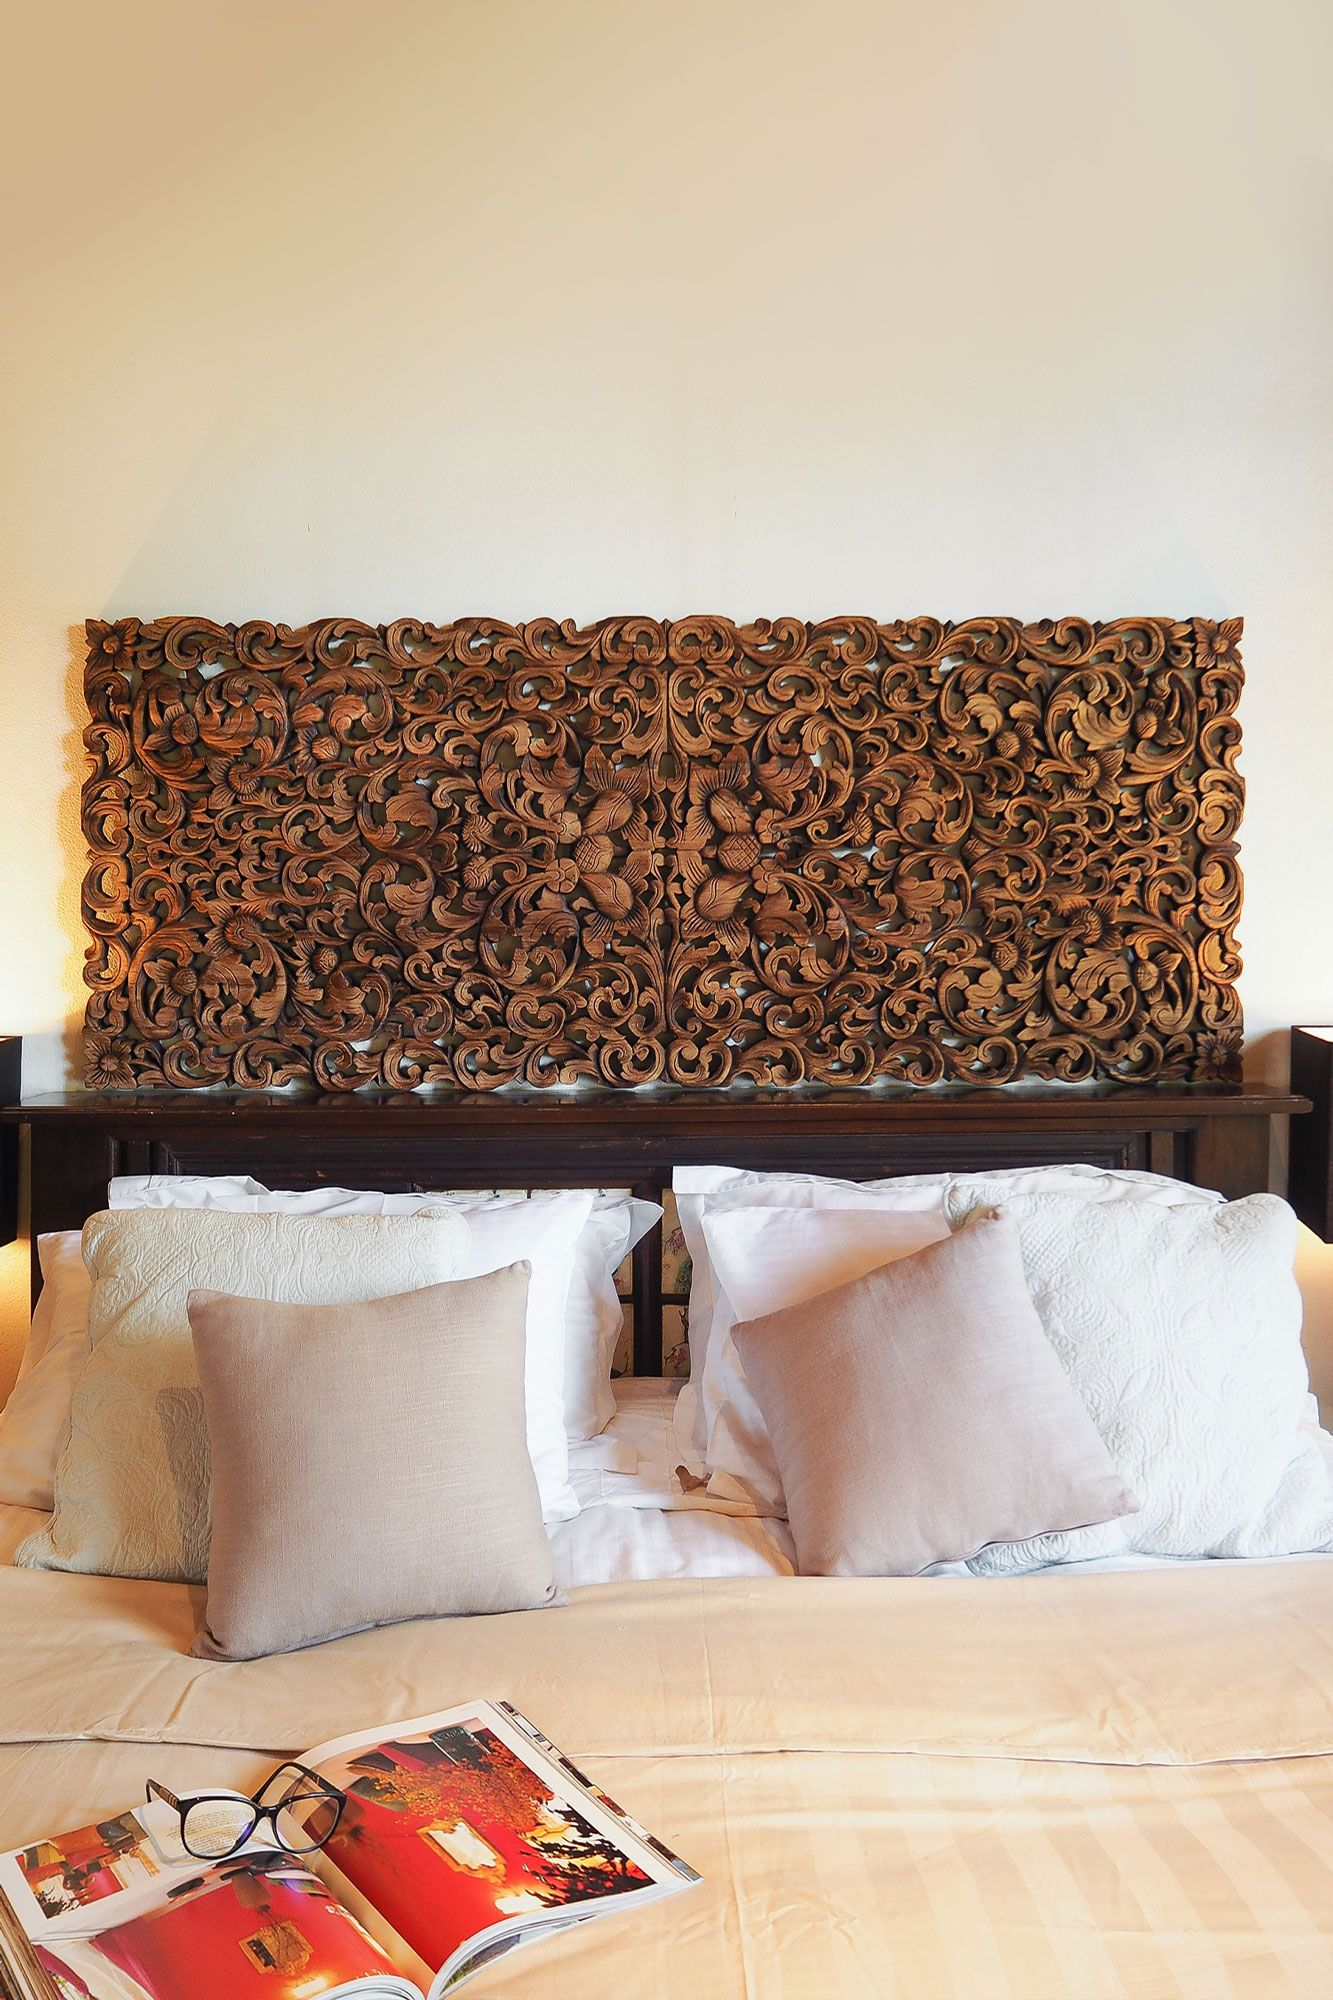 Buy Tropical Frond King Size Headboard Online In 2020 King Size Headboard Carved Headboard Wooden King Size Bed